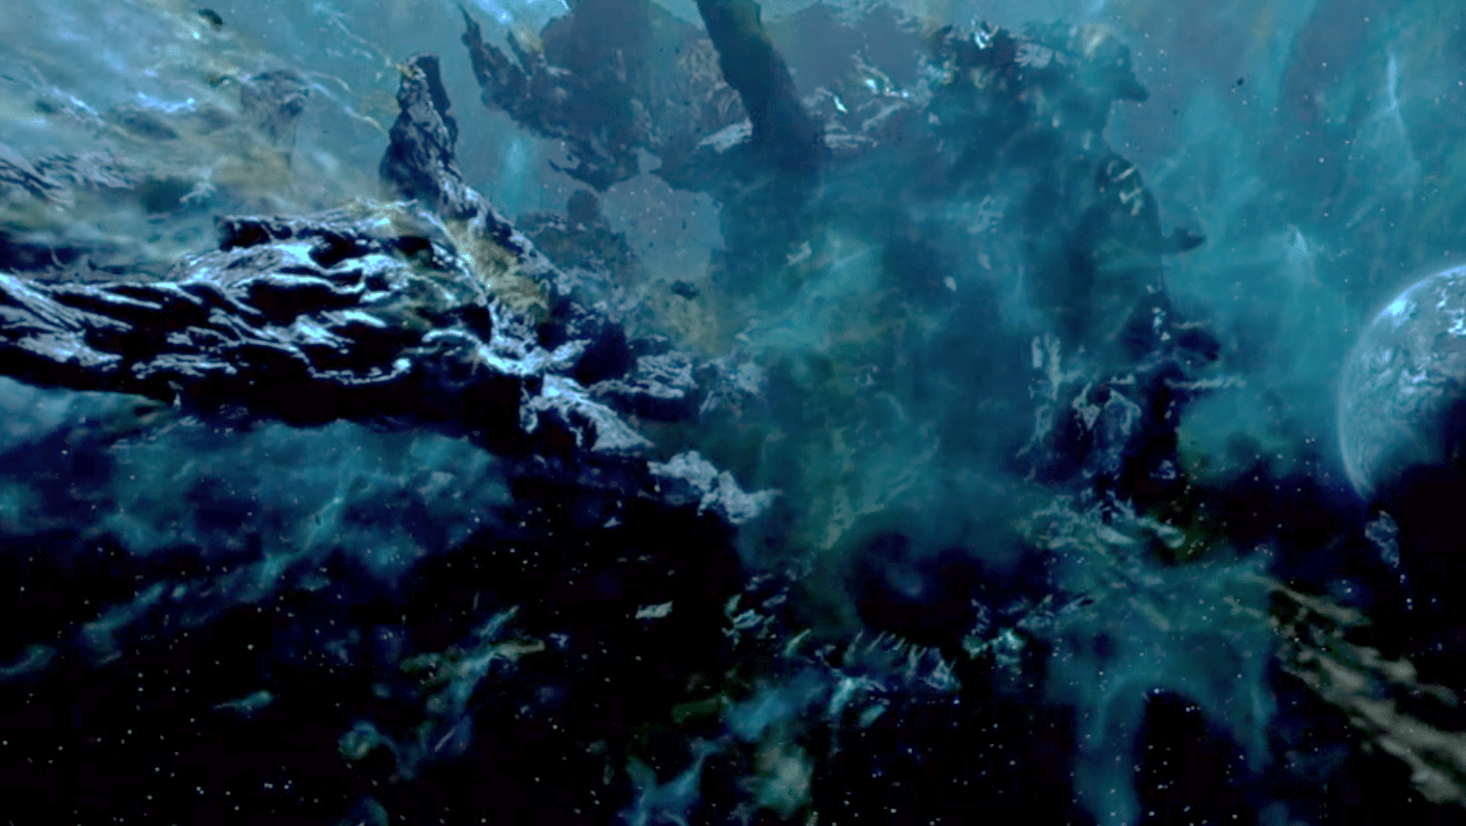 A metal asteroid the size of Texas in the film Armageddon (1998).